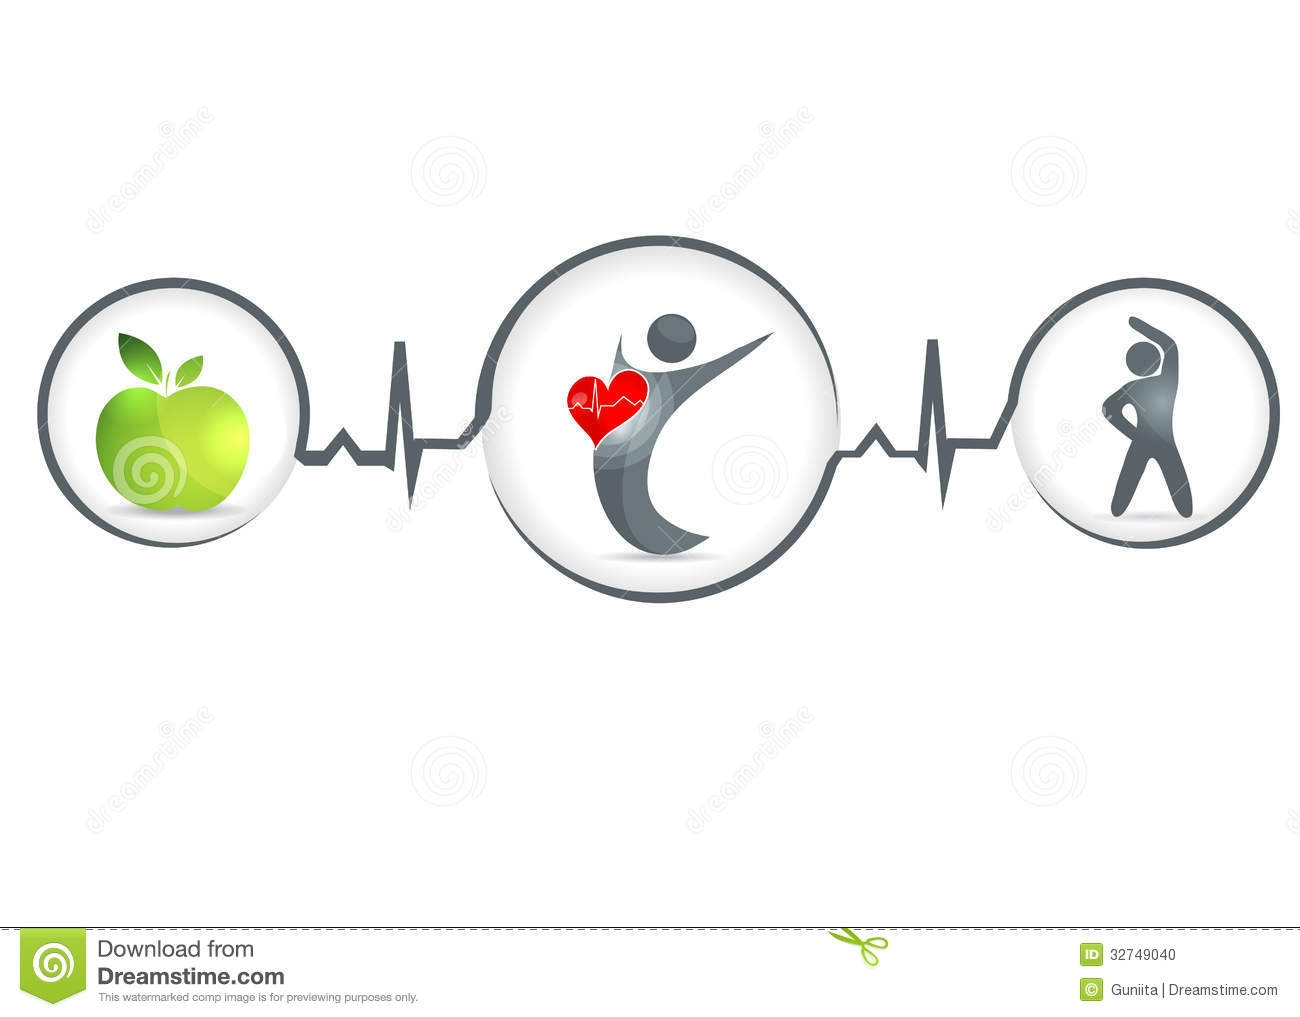 Health And Wellness Clip Art Free-Health and Wellness Clip Art Free-4